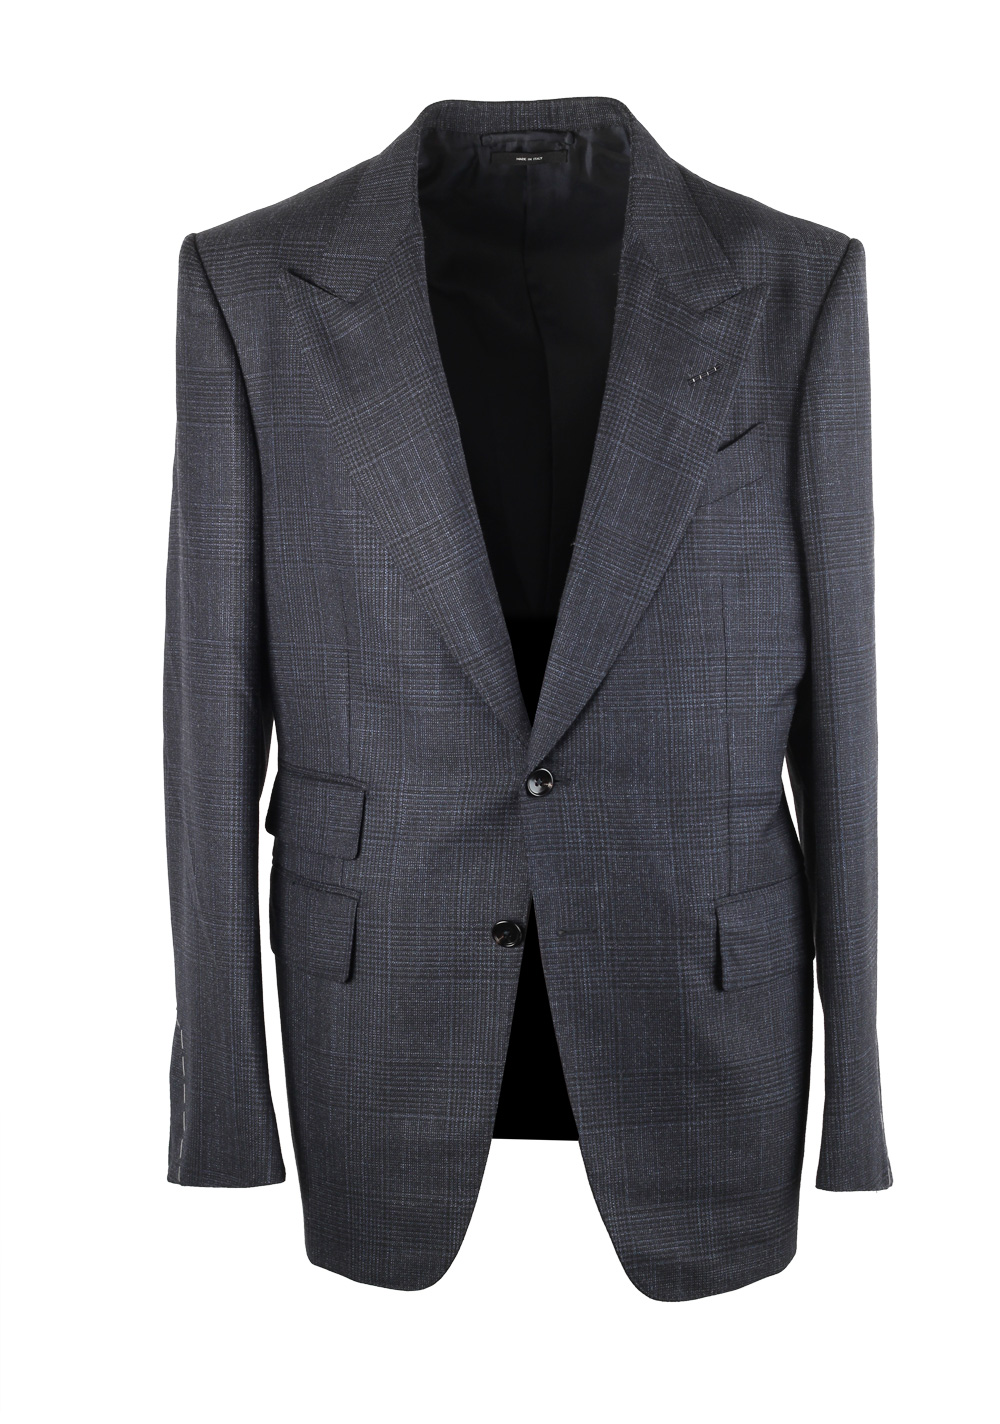 TOM FORD Shelton Blue Gray Checked Suit Size 46 / 36R U.S. | Costume Limité